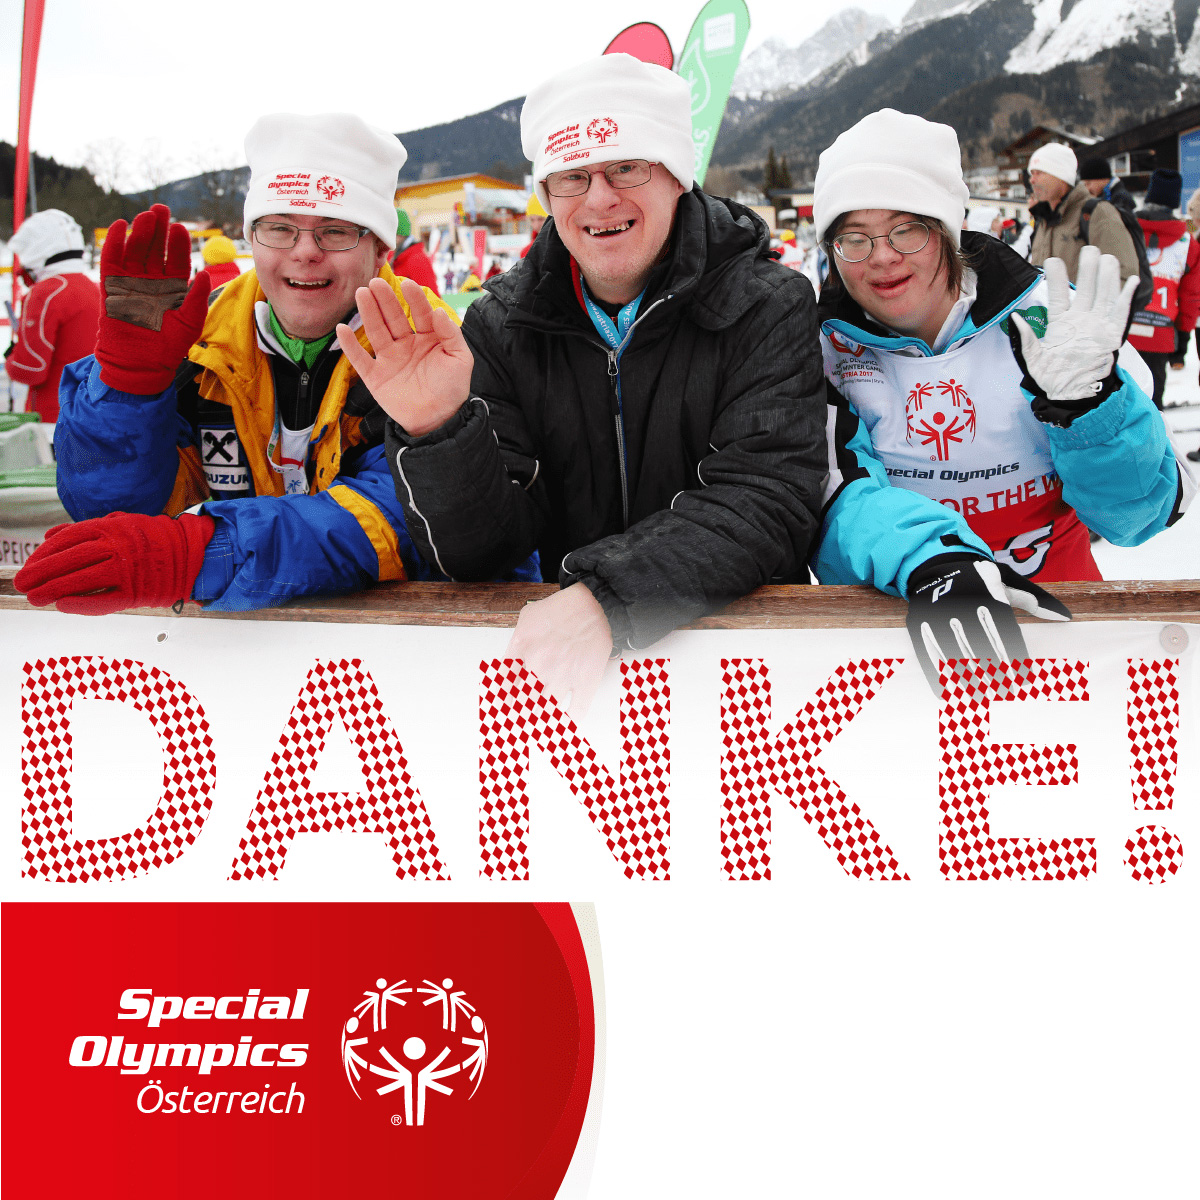 Special Olympics - Sponsoring